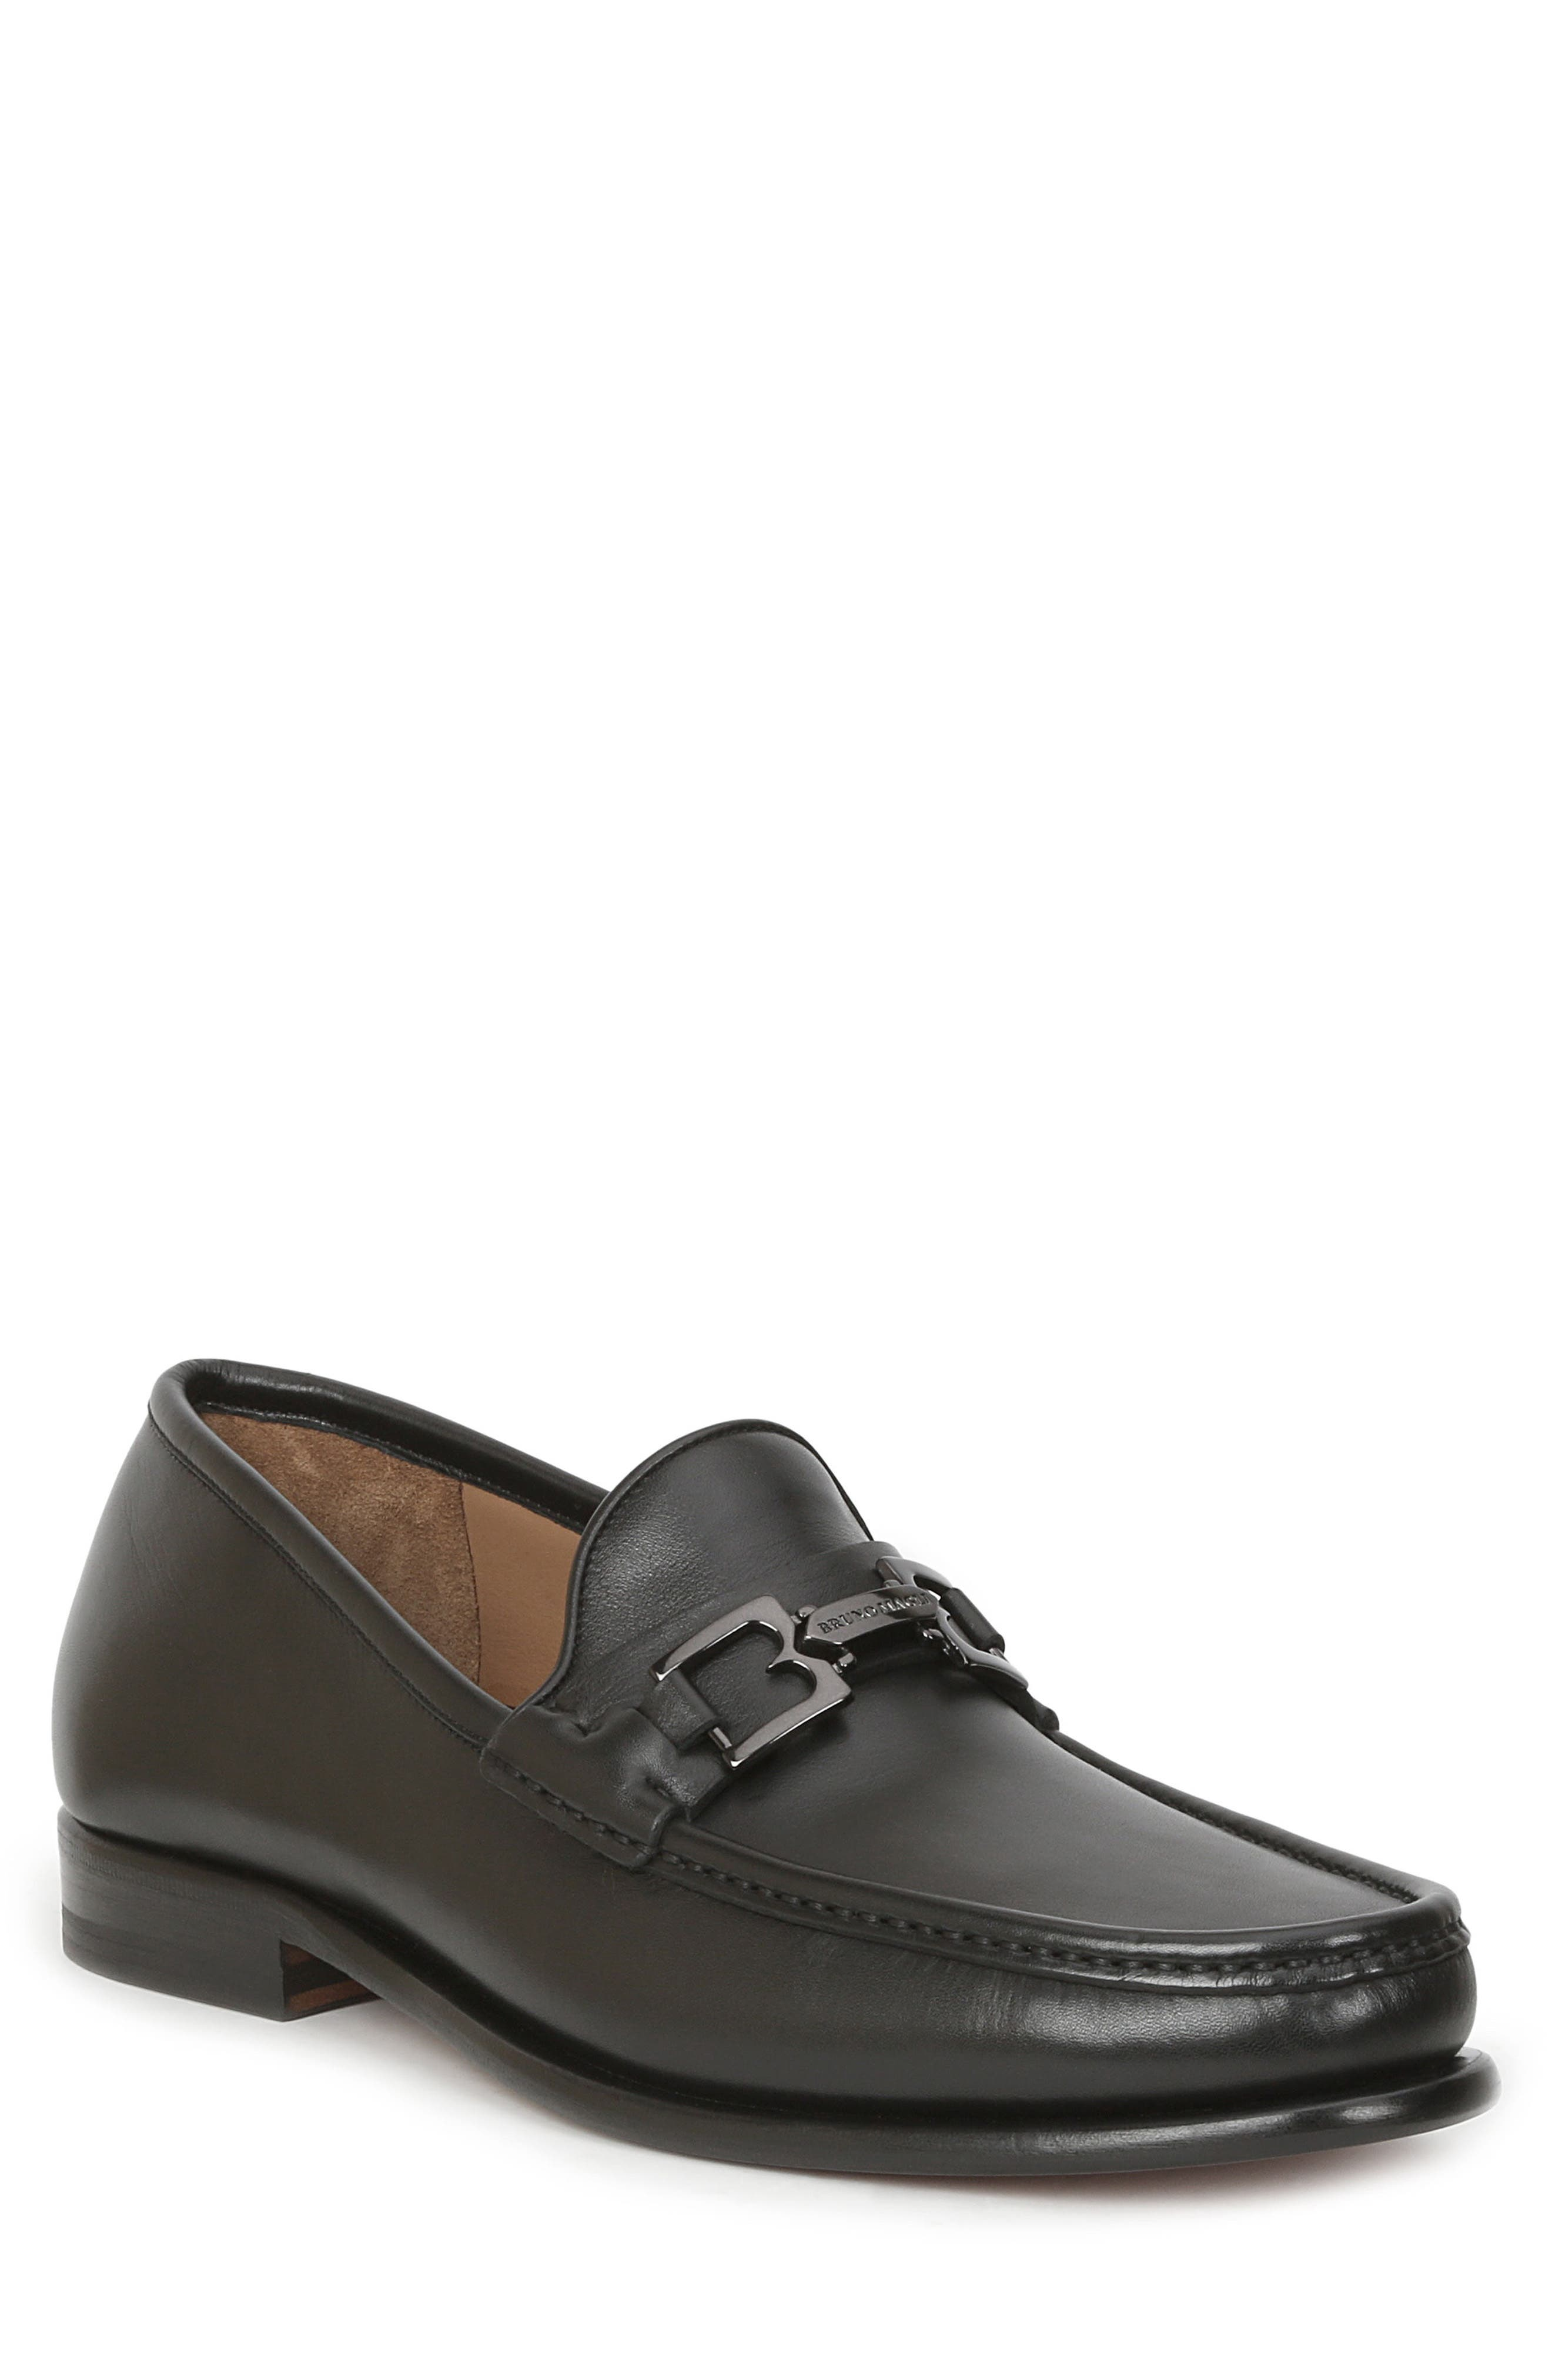 Enzo Bit Loafer,                         Main,                         color, Black